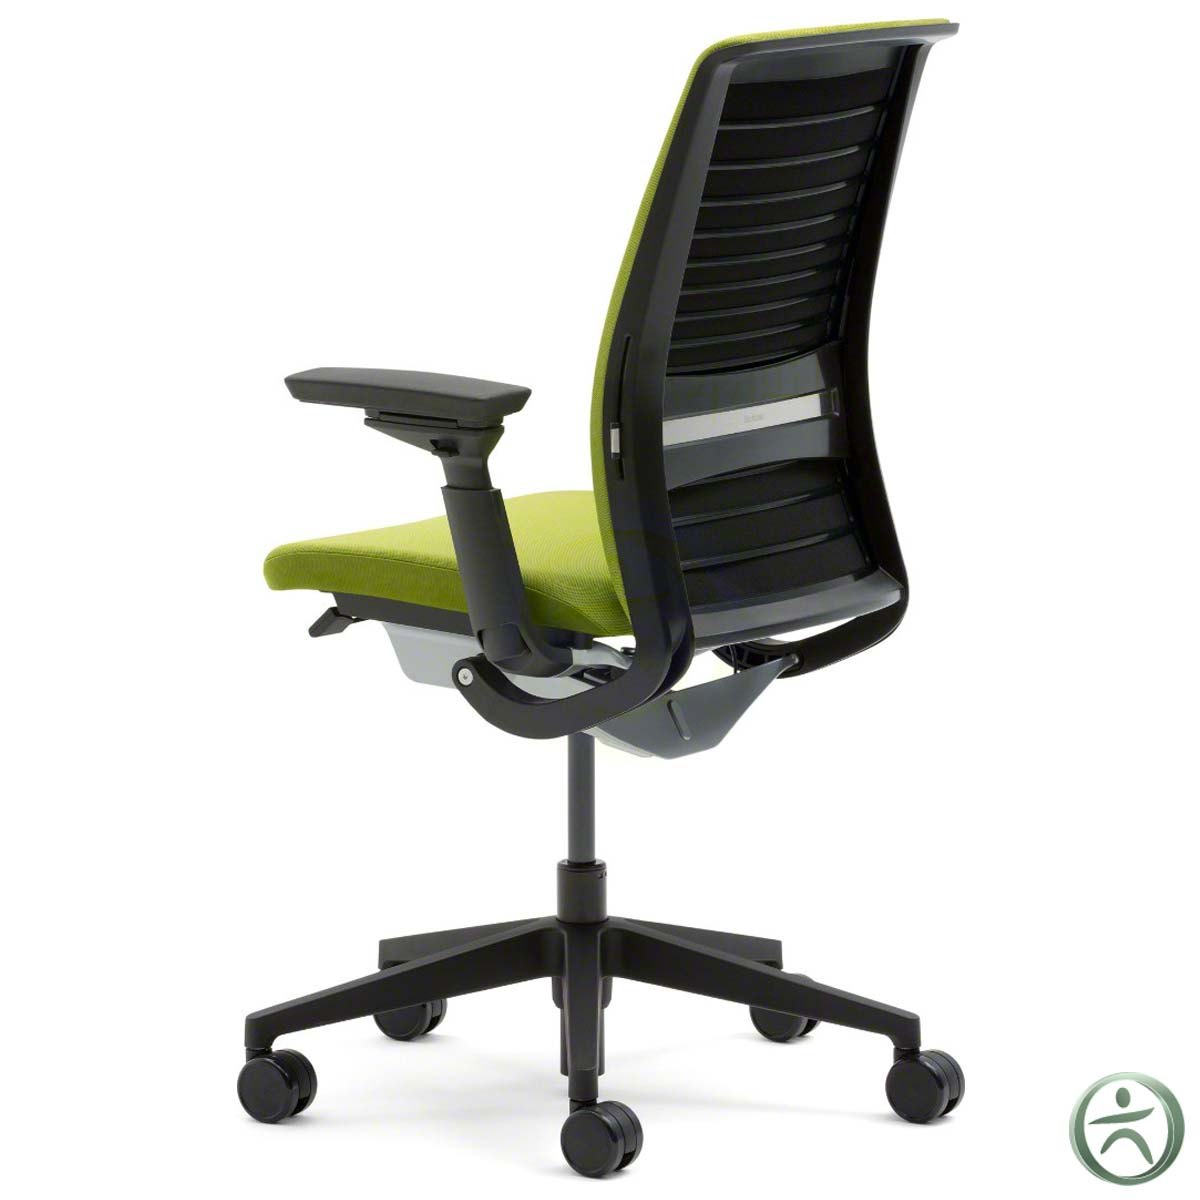 Think Chair Steelcase Steelcase Think Chairs Steelcase Think Chair